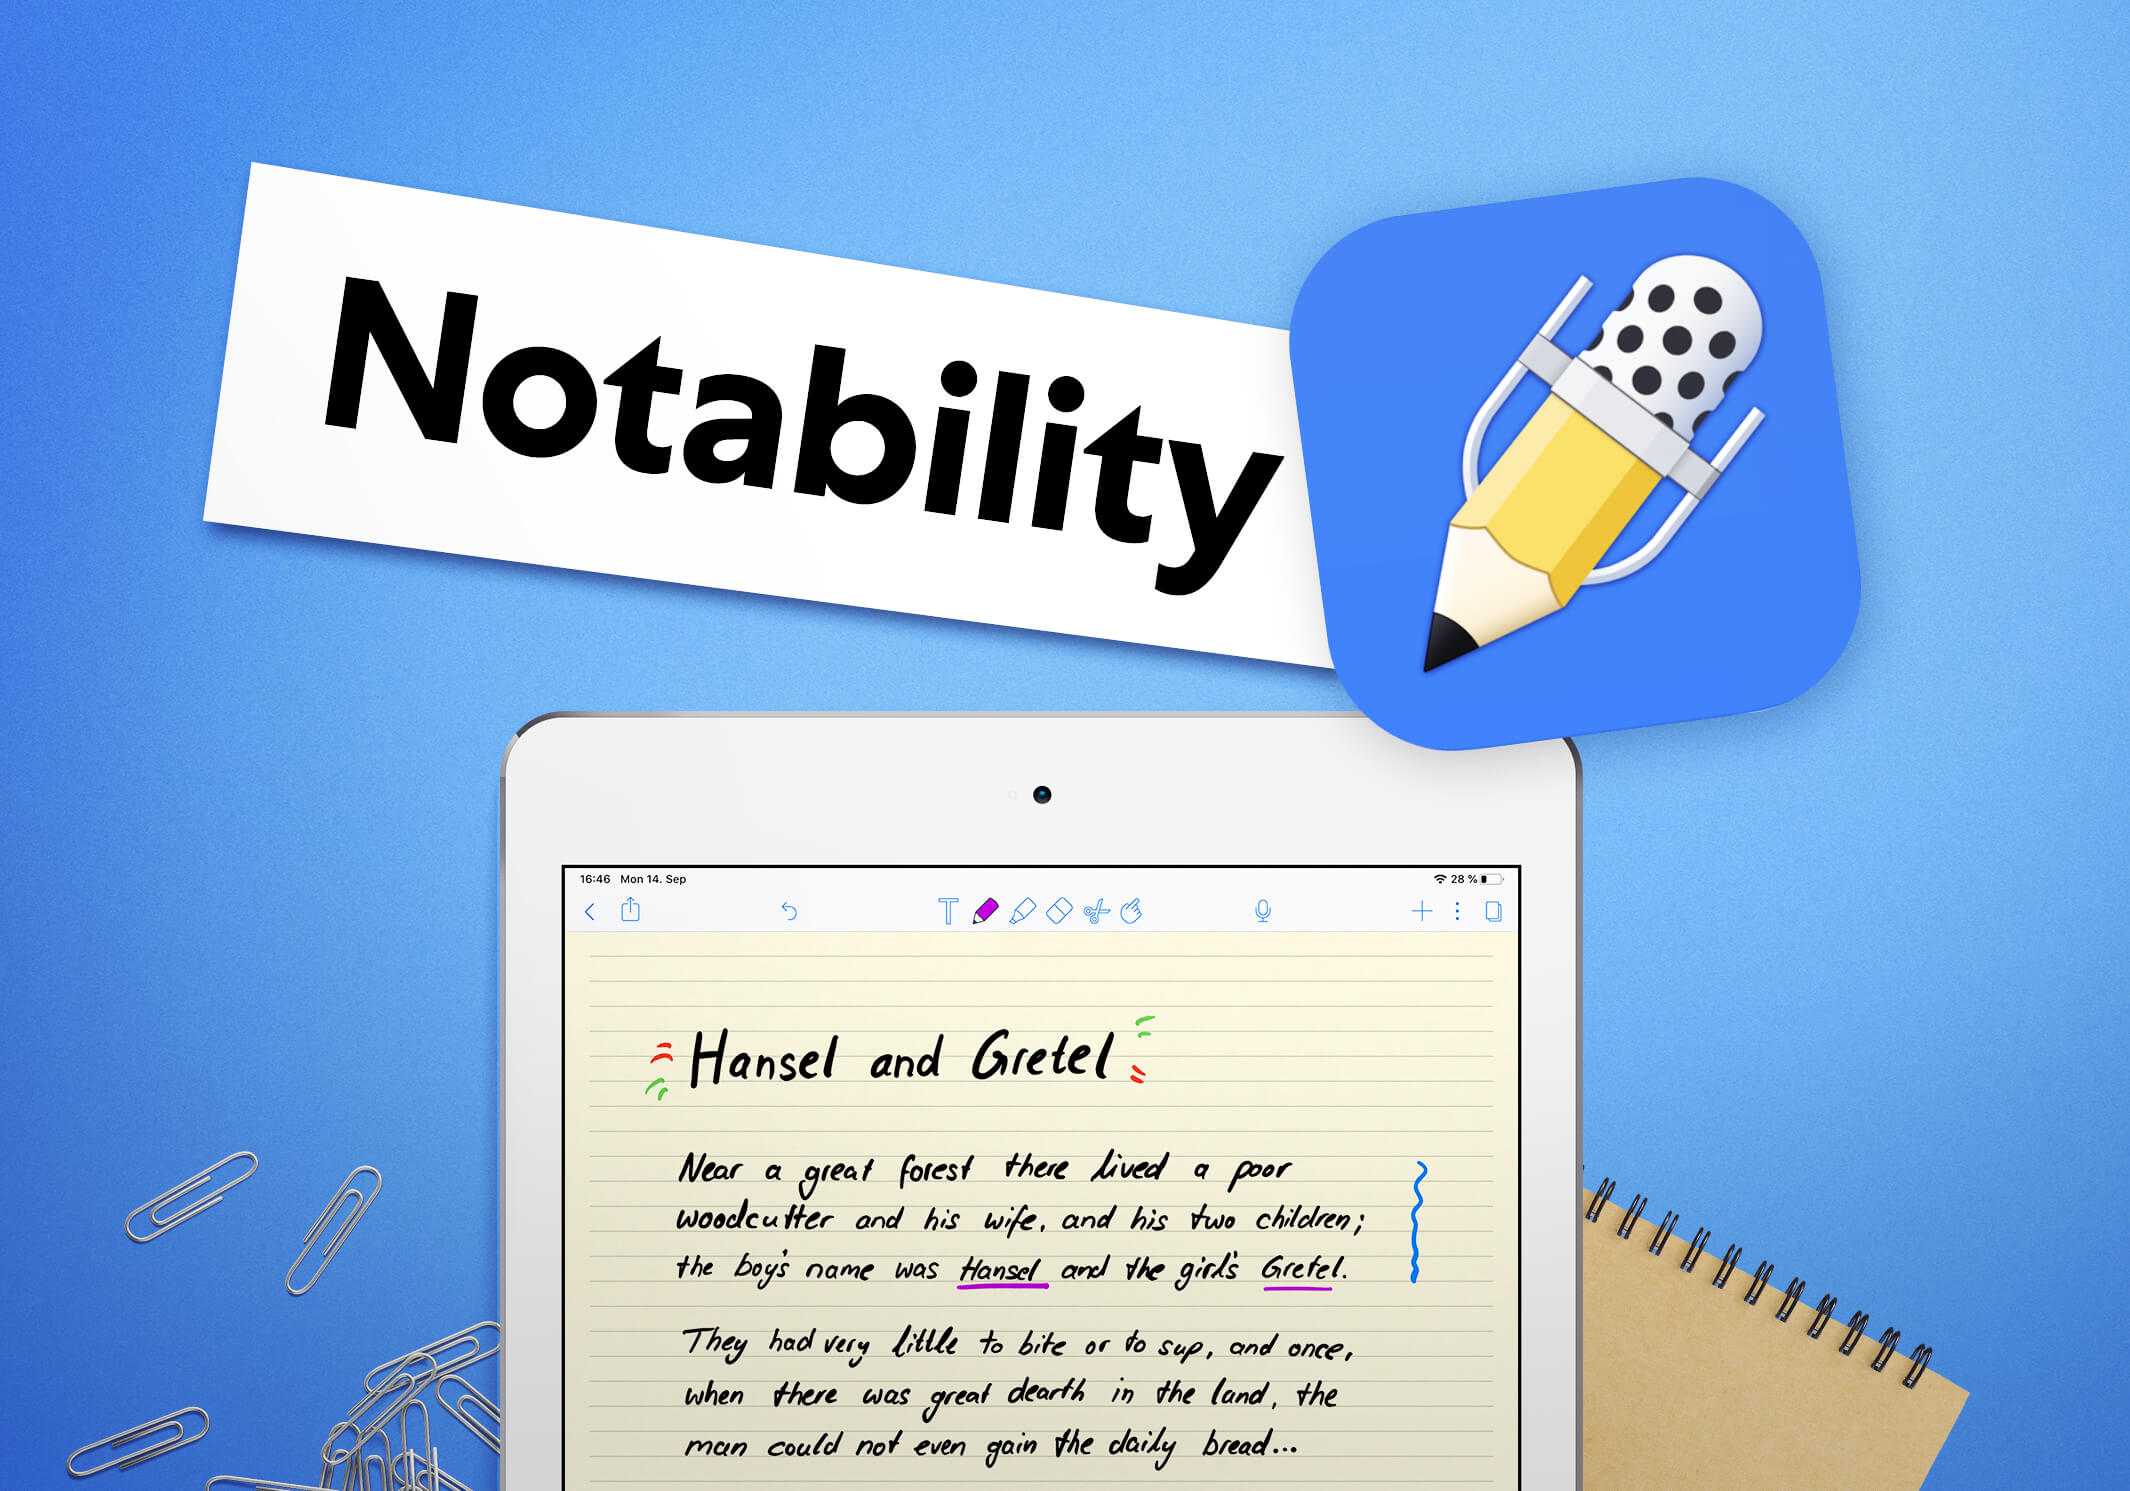 A title card for the Notability comparison section.